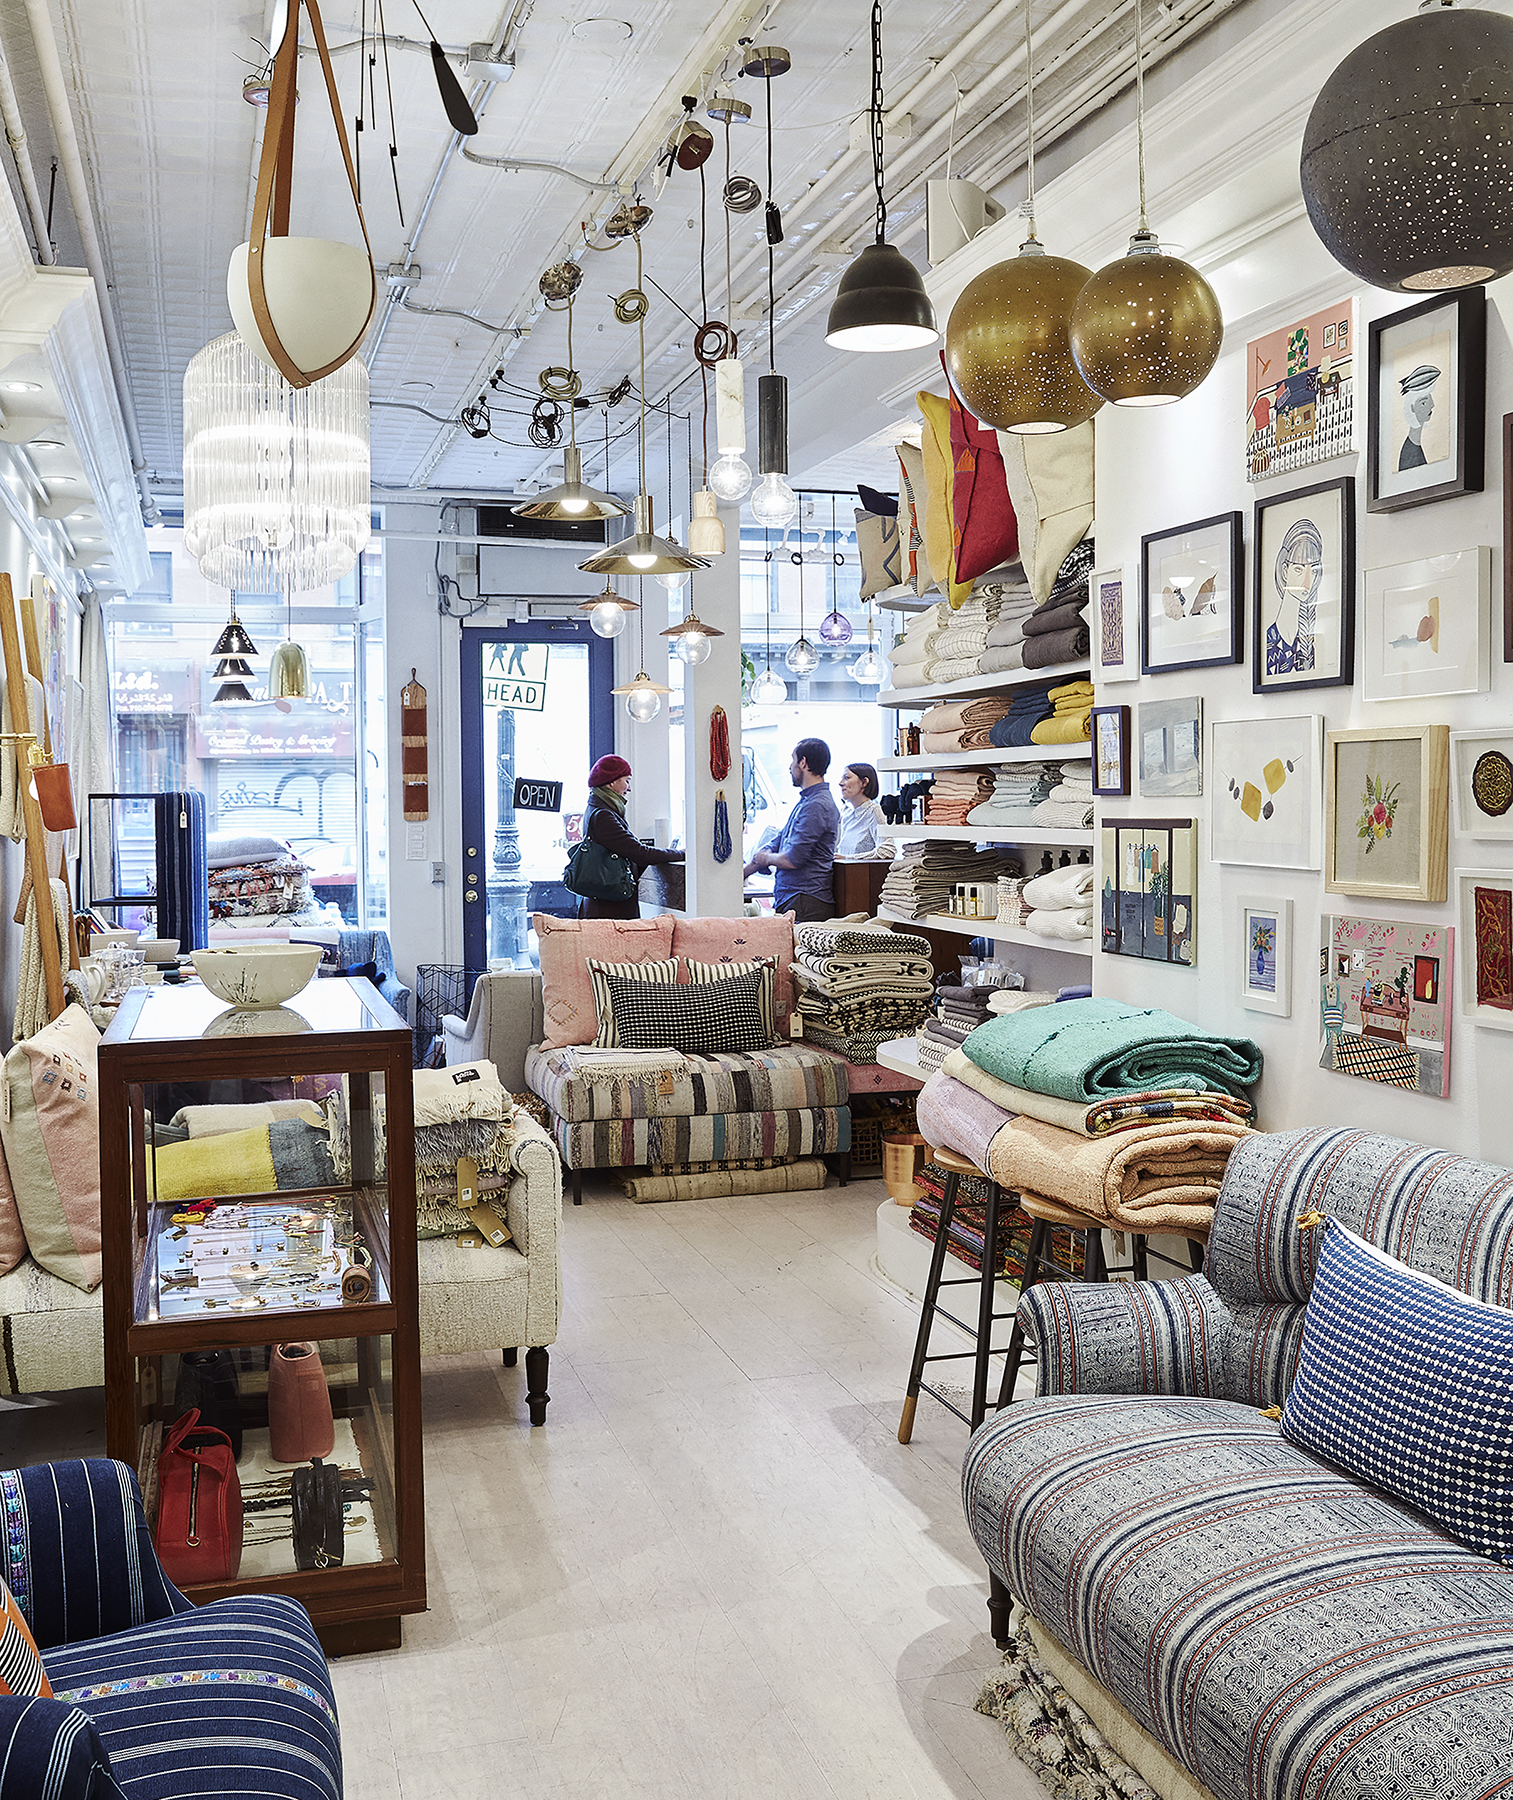 3 Things To Keep In Mind When Shopping For Home Decor